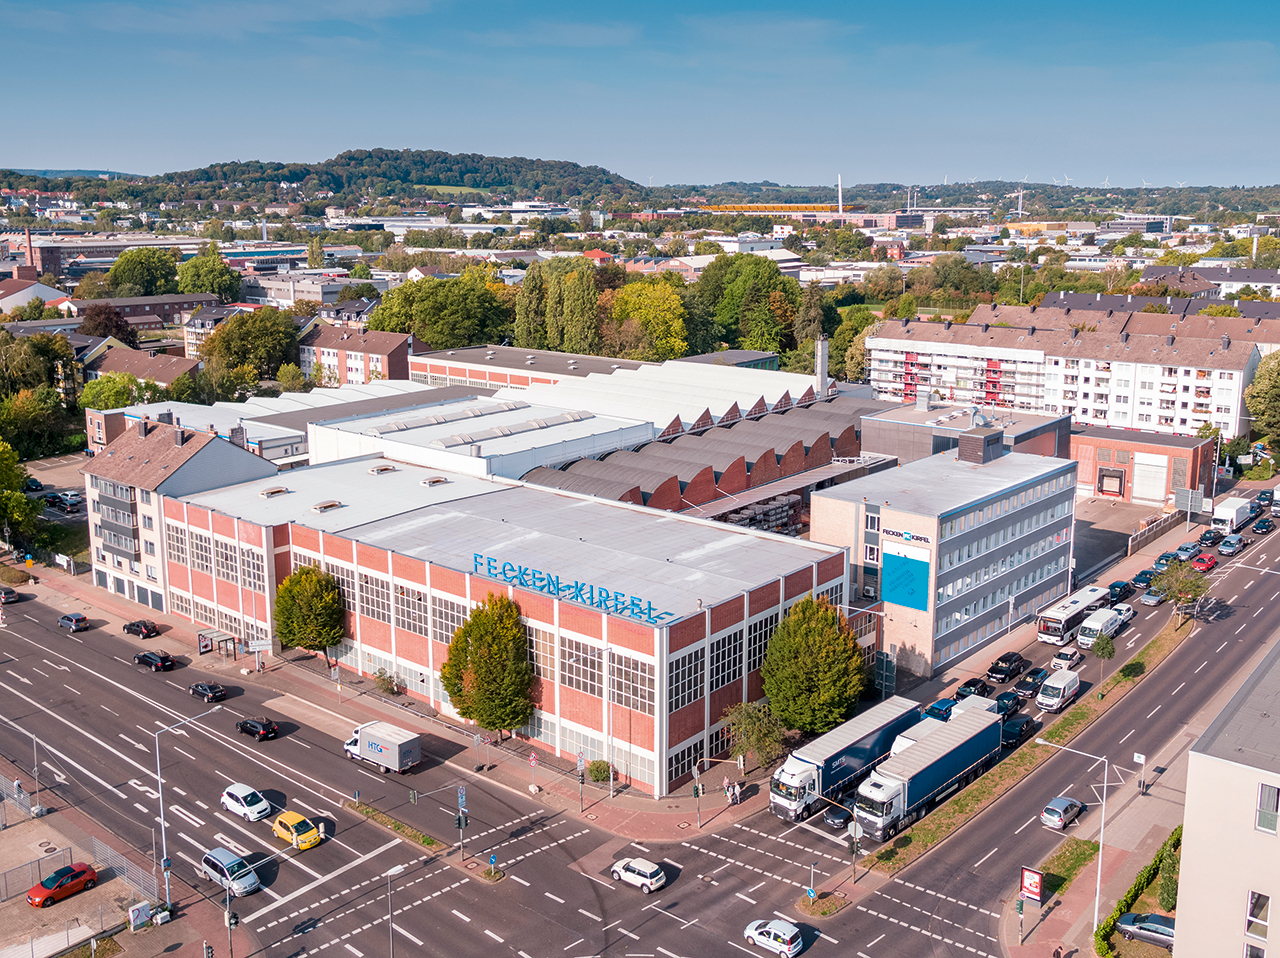 Since 1938 Fecken-Kirfel has been at home on the Prager Ring in Aachen, Germany. Since then the production plant has been continuously expanded and modernised. (Source: Fecken-Kirfel)